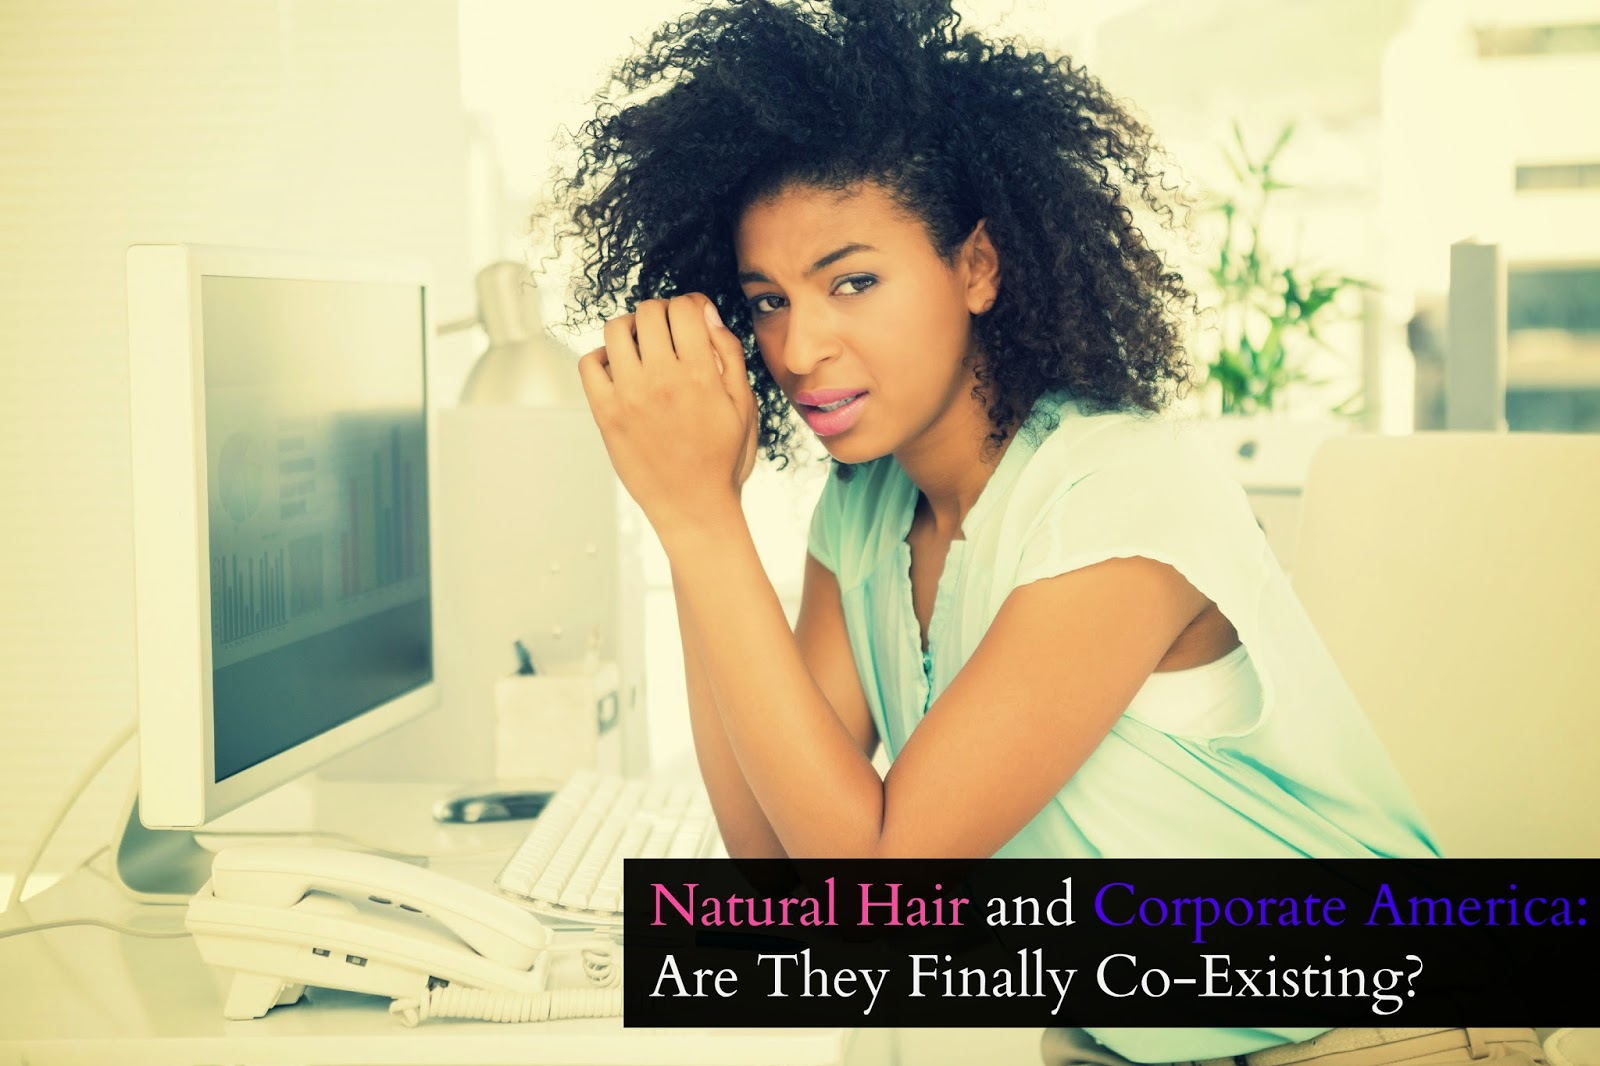 Natural Hair and Corporate America: Are They Finally Co-Existing?